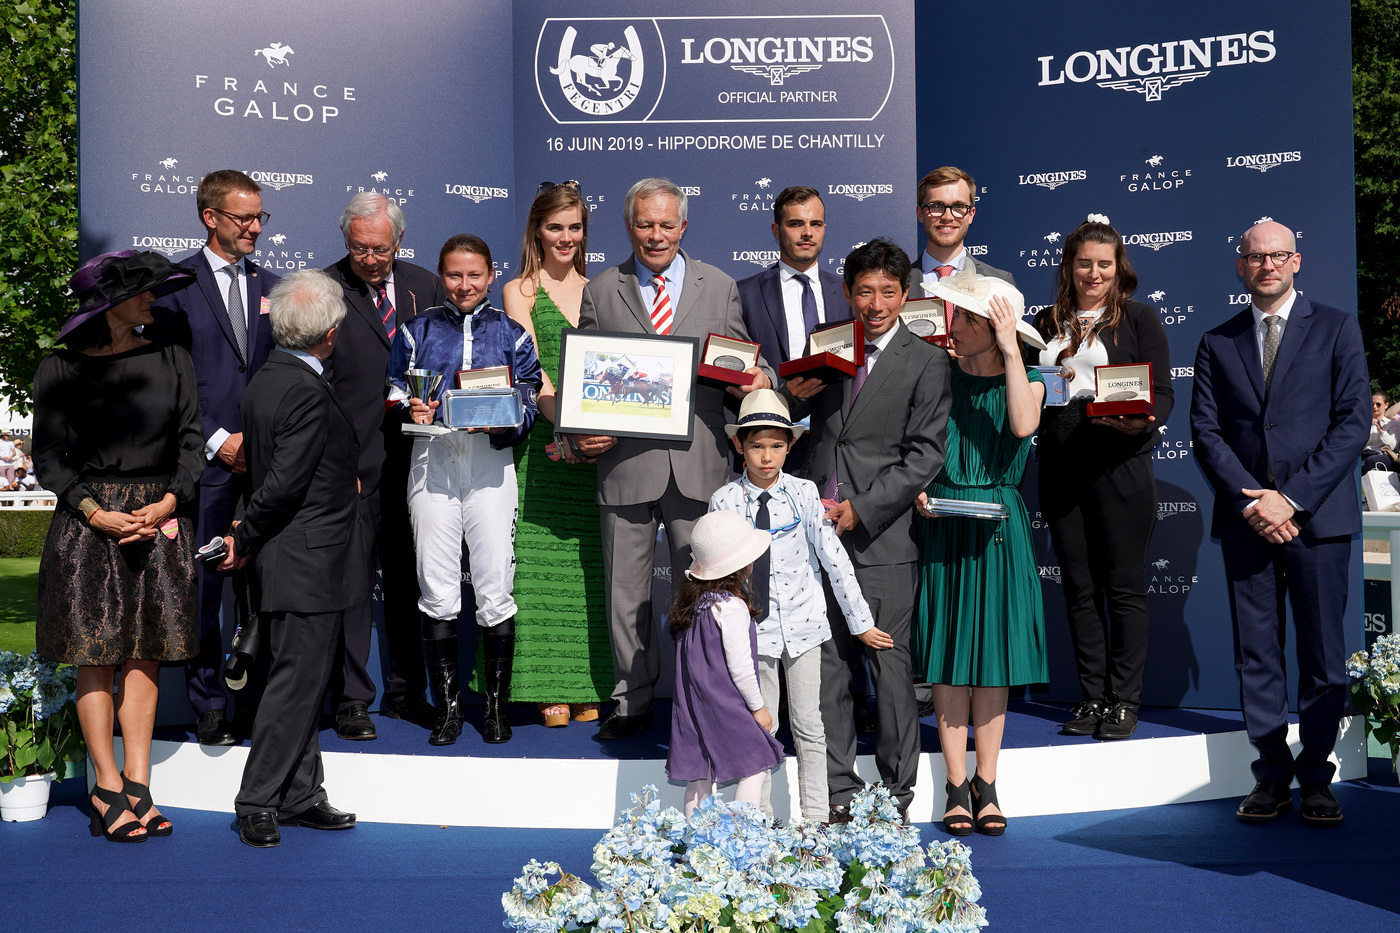 Longines Flat Racing Event: A remarkable 2019 edition of the Prix de Diane Longines in presence of Longines Ambassador of Elegance Simon Baker  4